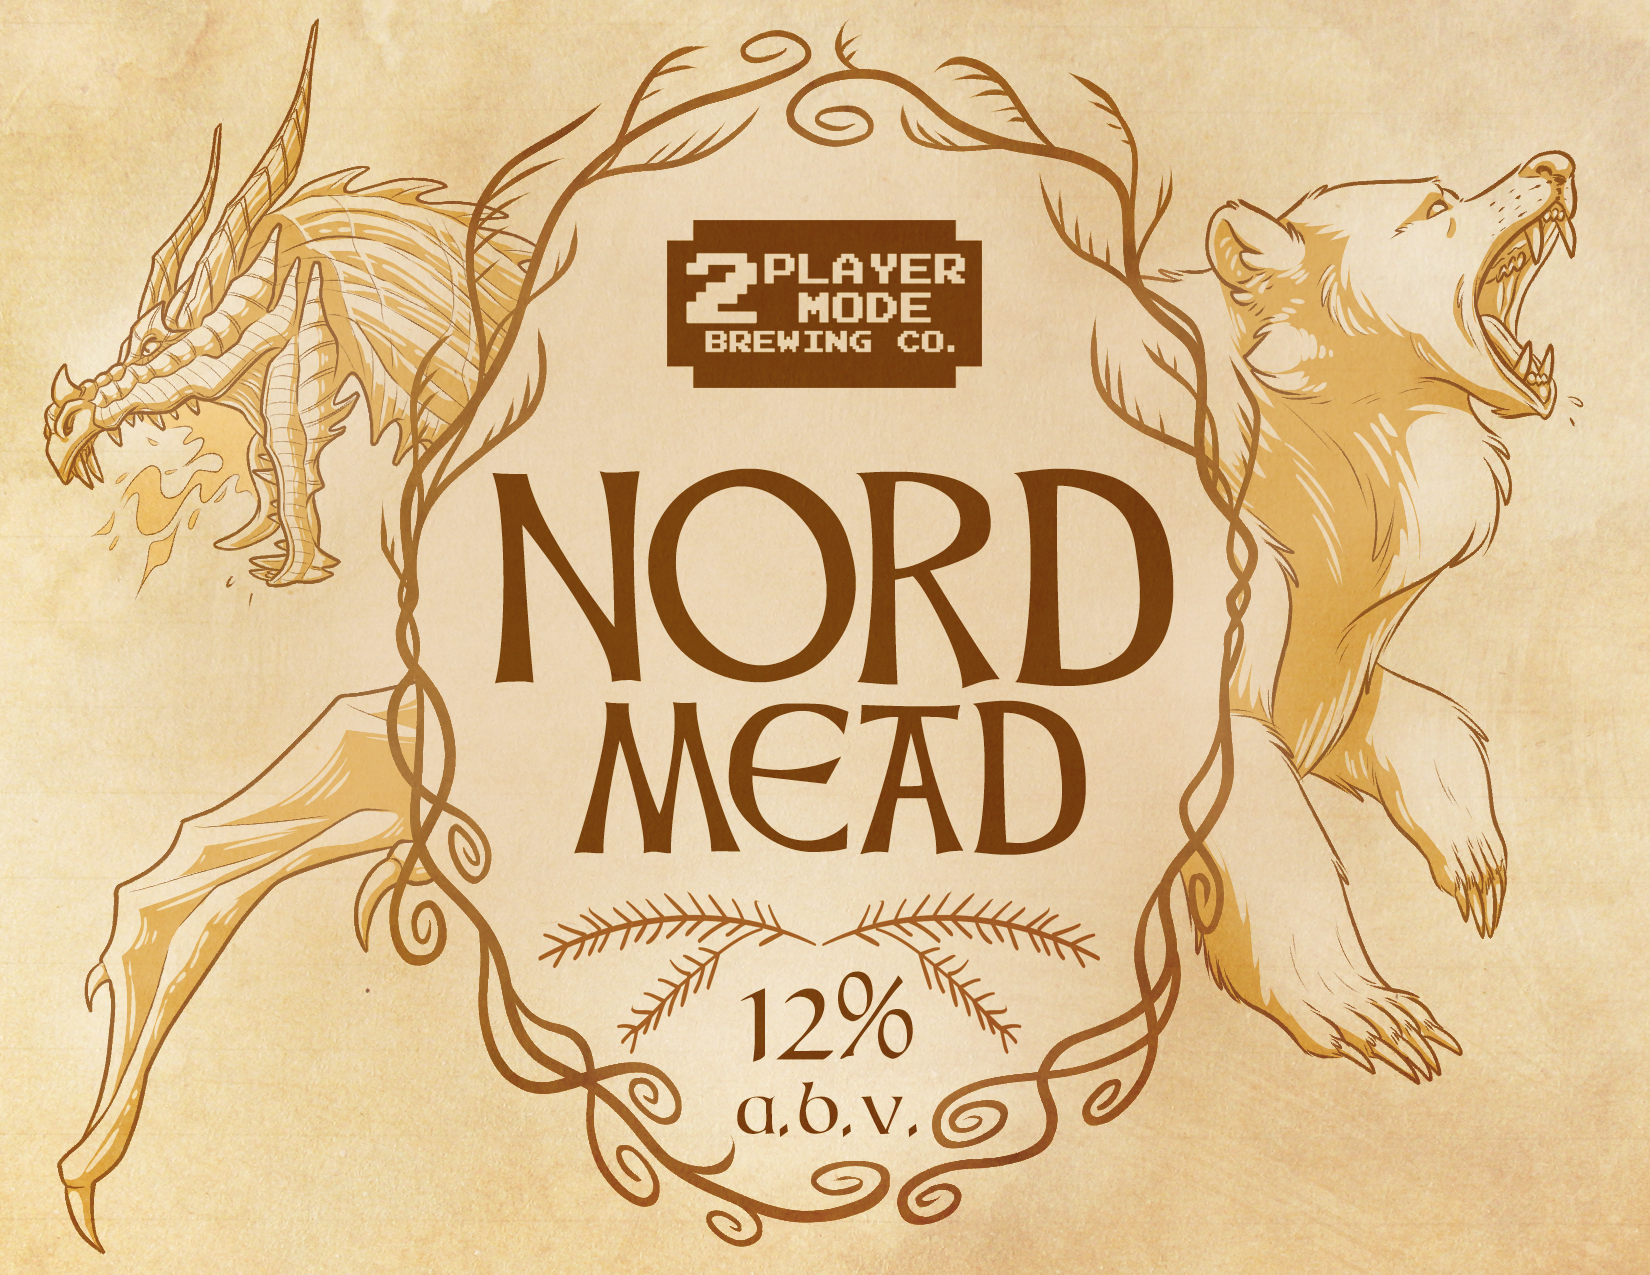 Mead Label Design - Nord Mead (Skyrim Influenced)